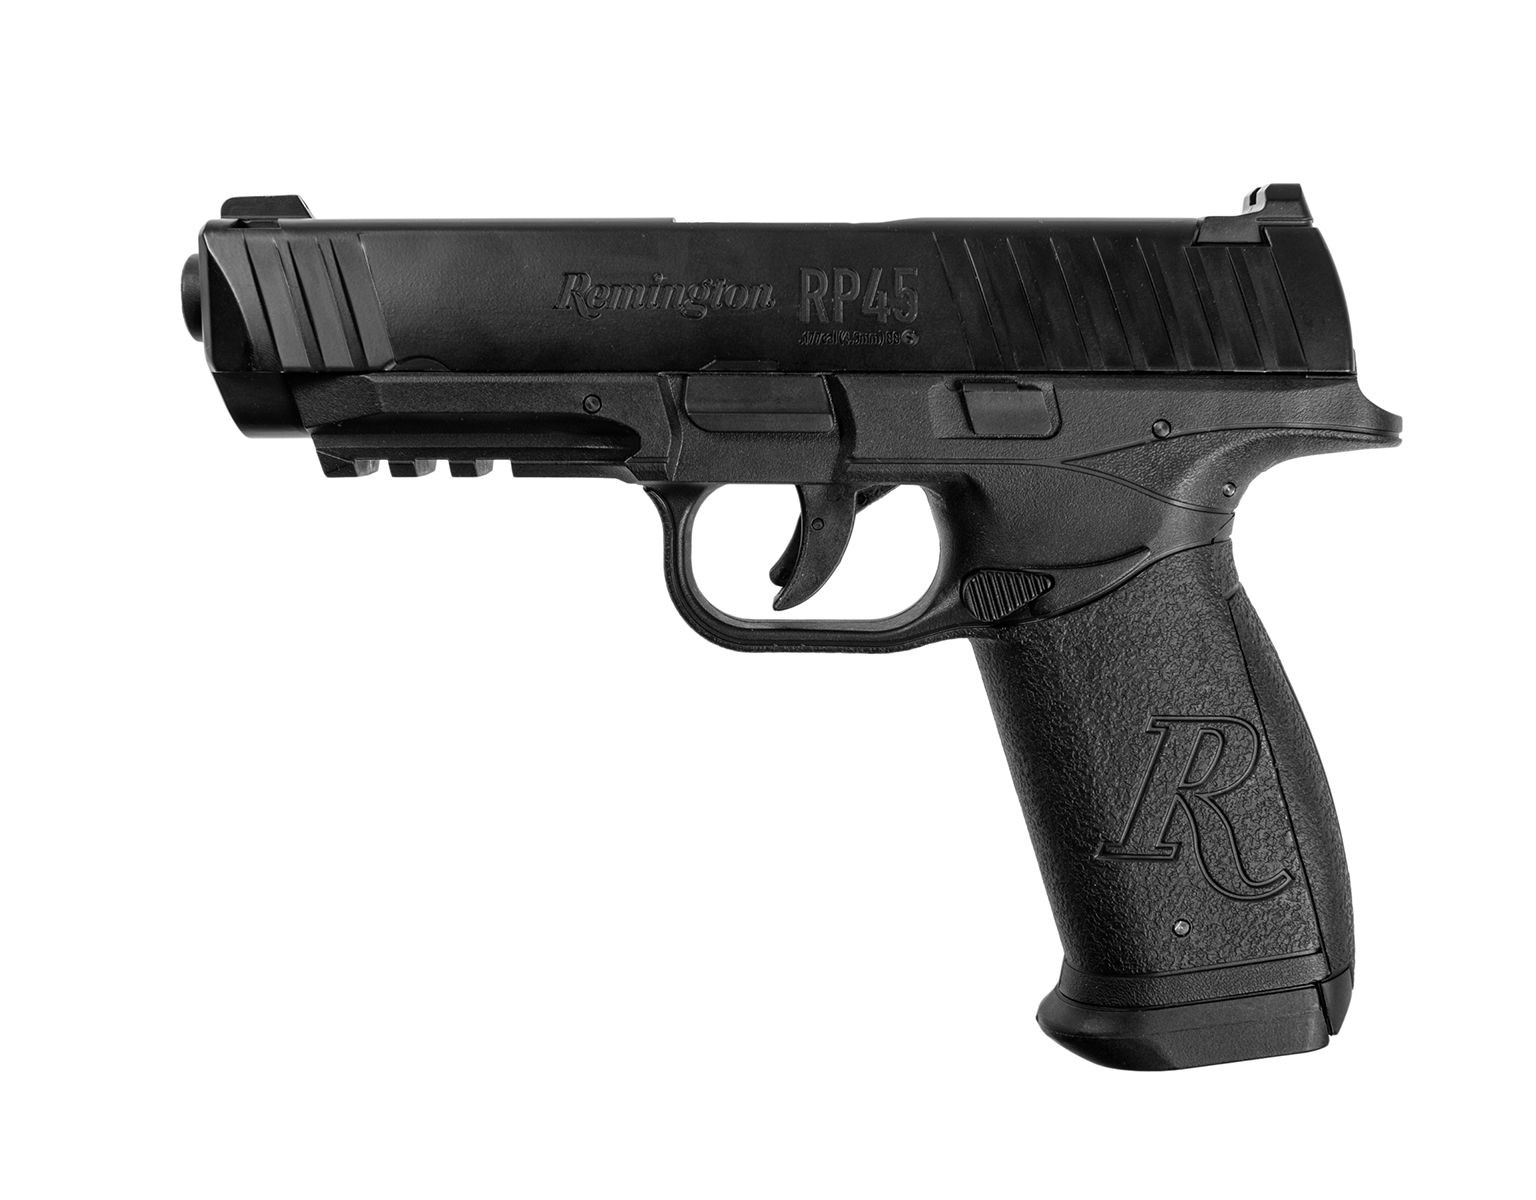 Wiatrówka pistolet Remington RP45 4,46mm (RP45)